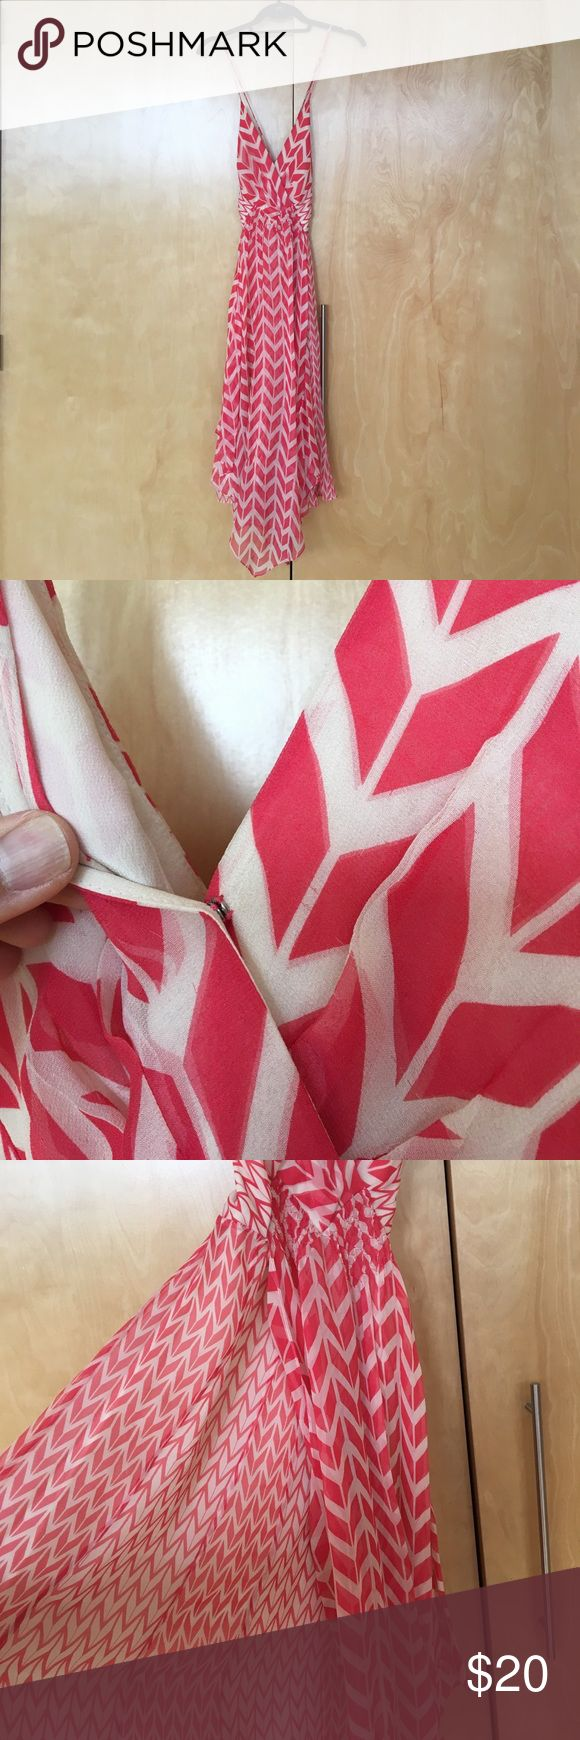 BCBG max Azria chevron print dress Max Azria Collection. Silk pink chevron print dress. Zipper on side. Clasp closure on front. BCBGMaxAzria Dresses